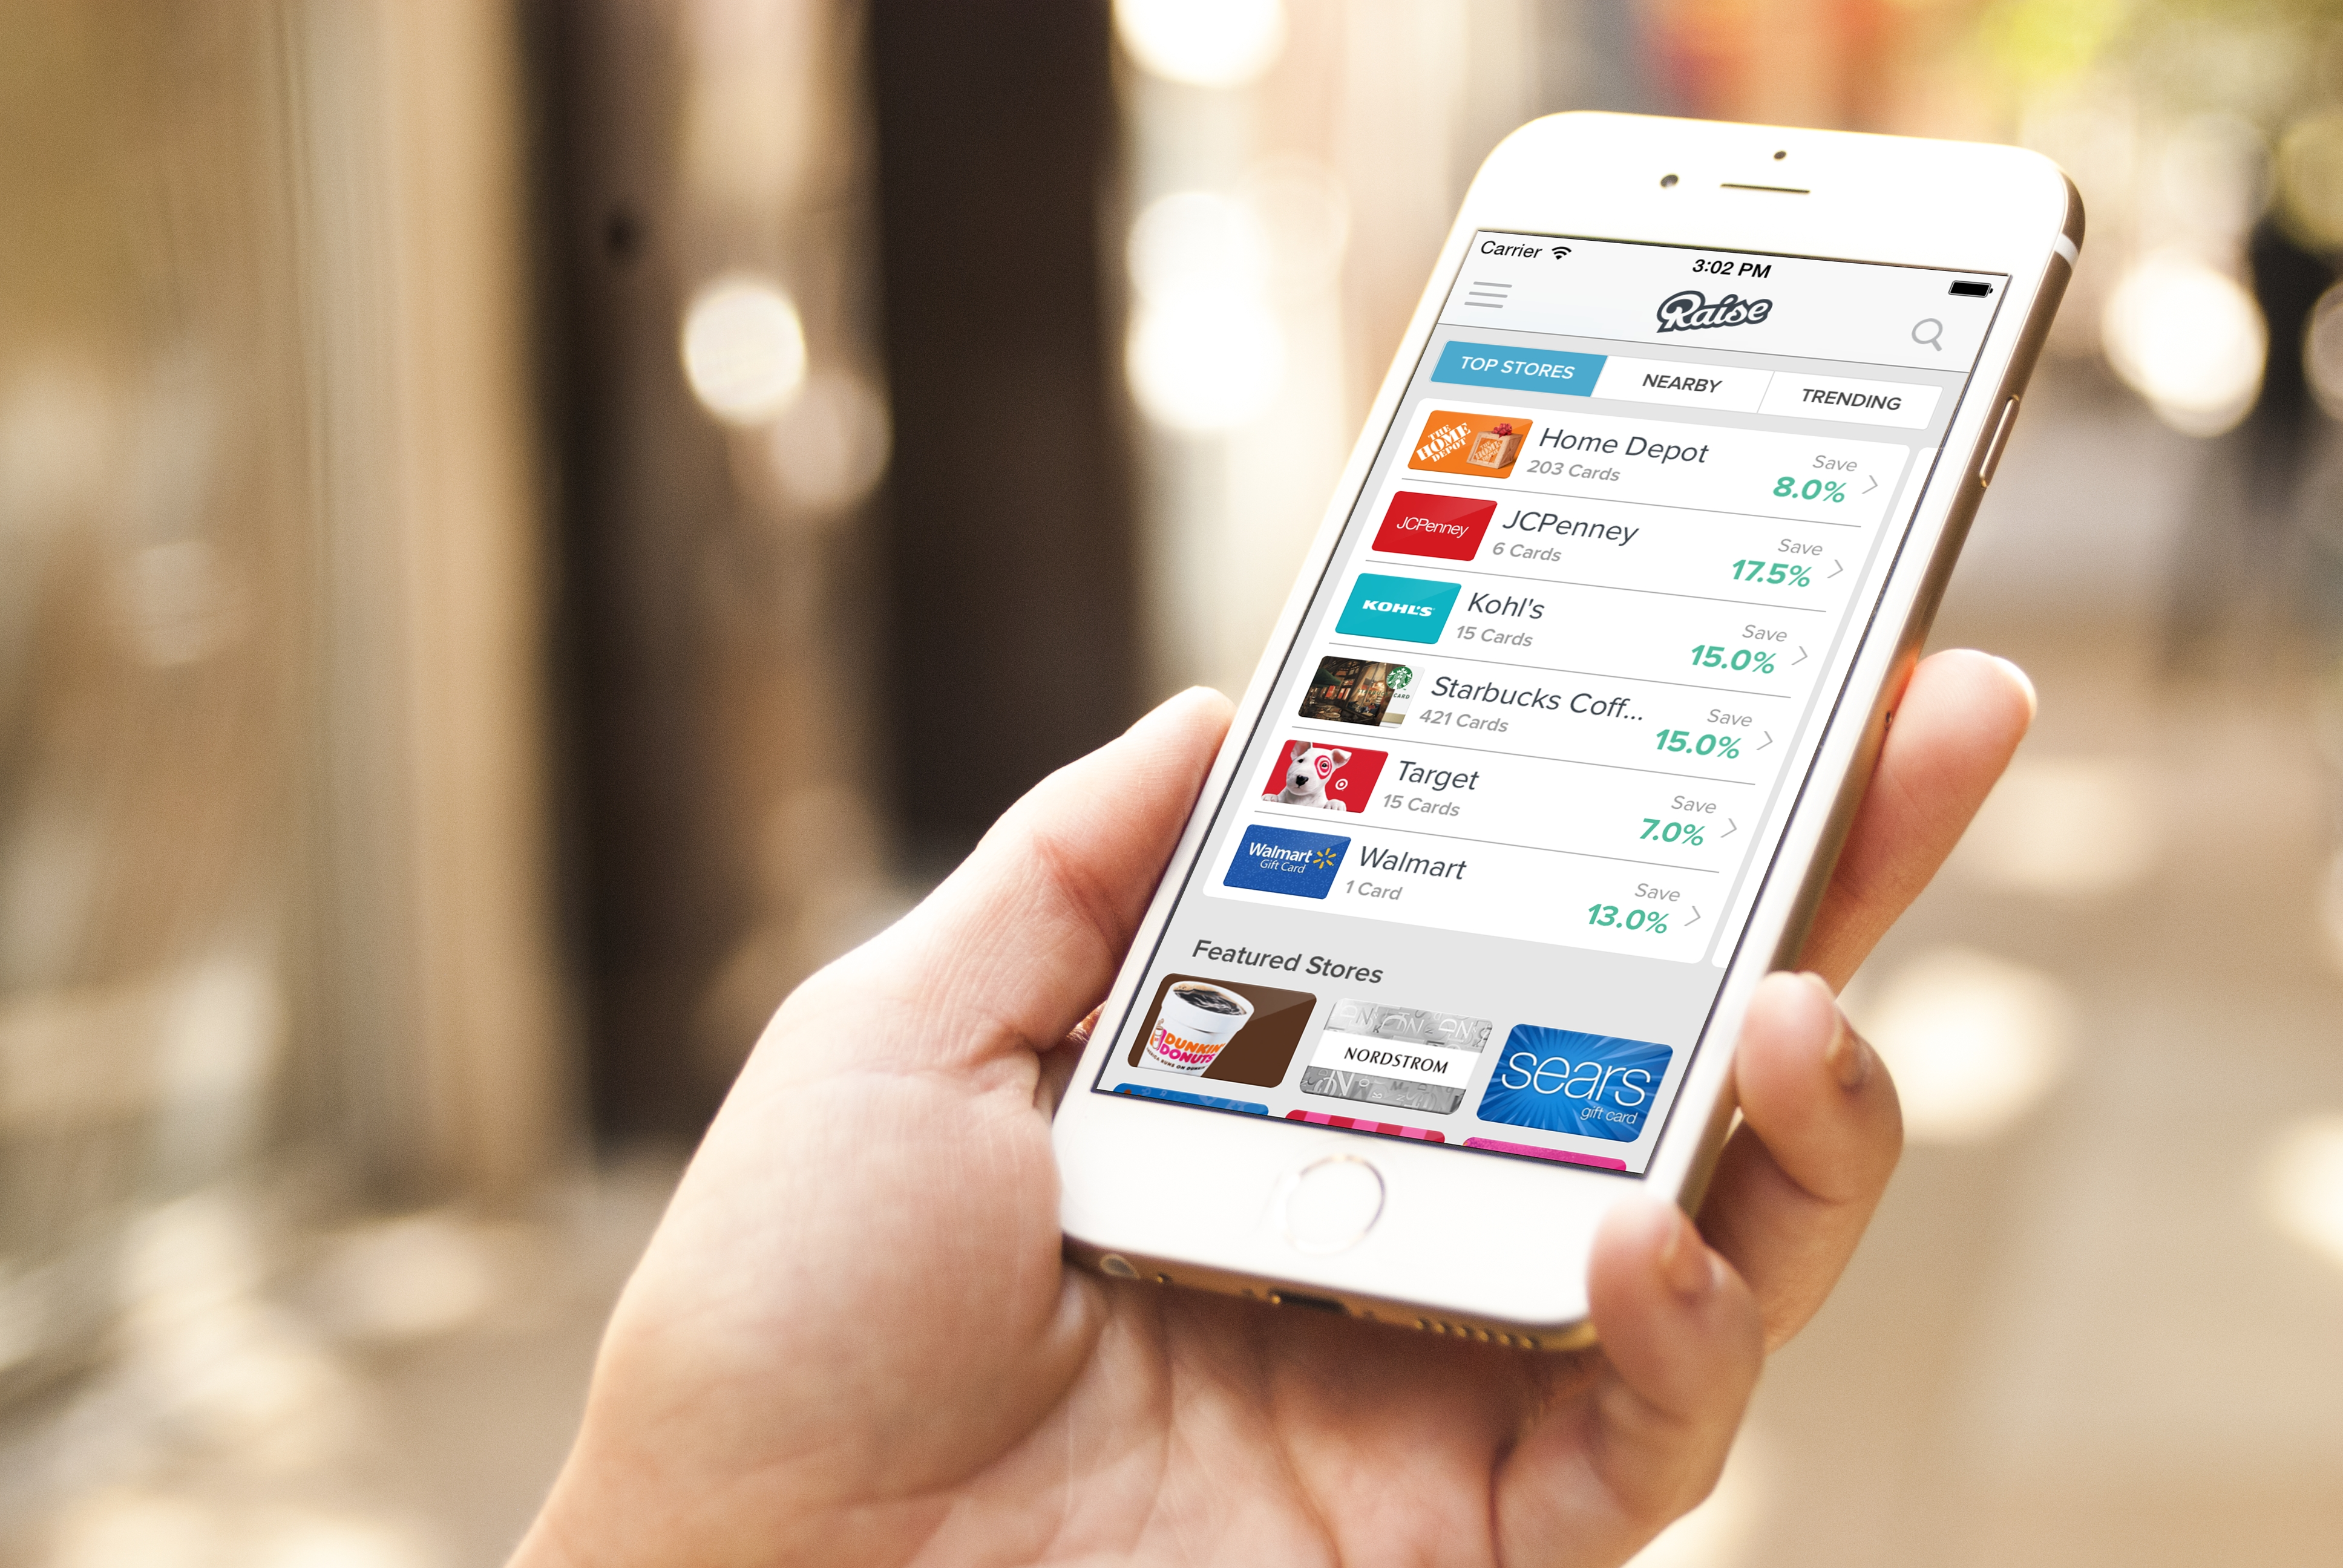 Gift Card Marketplace Raise.com Launches Mobile App to ...